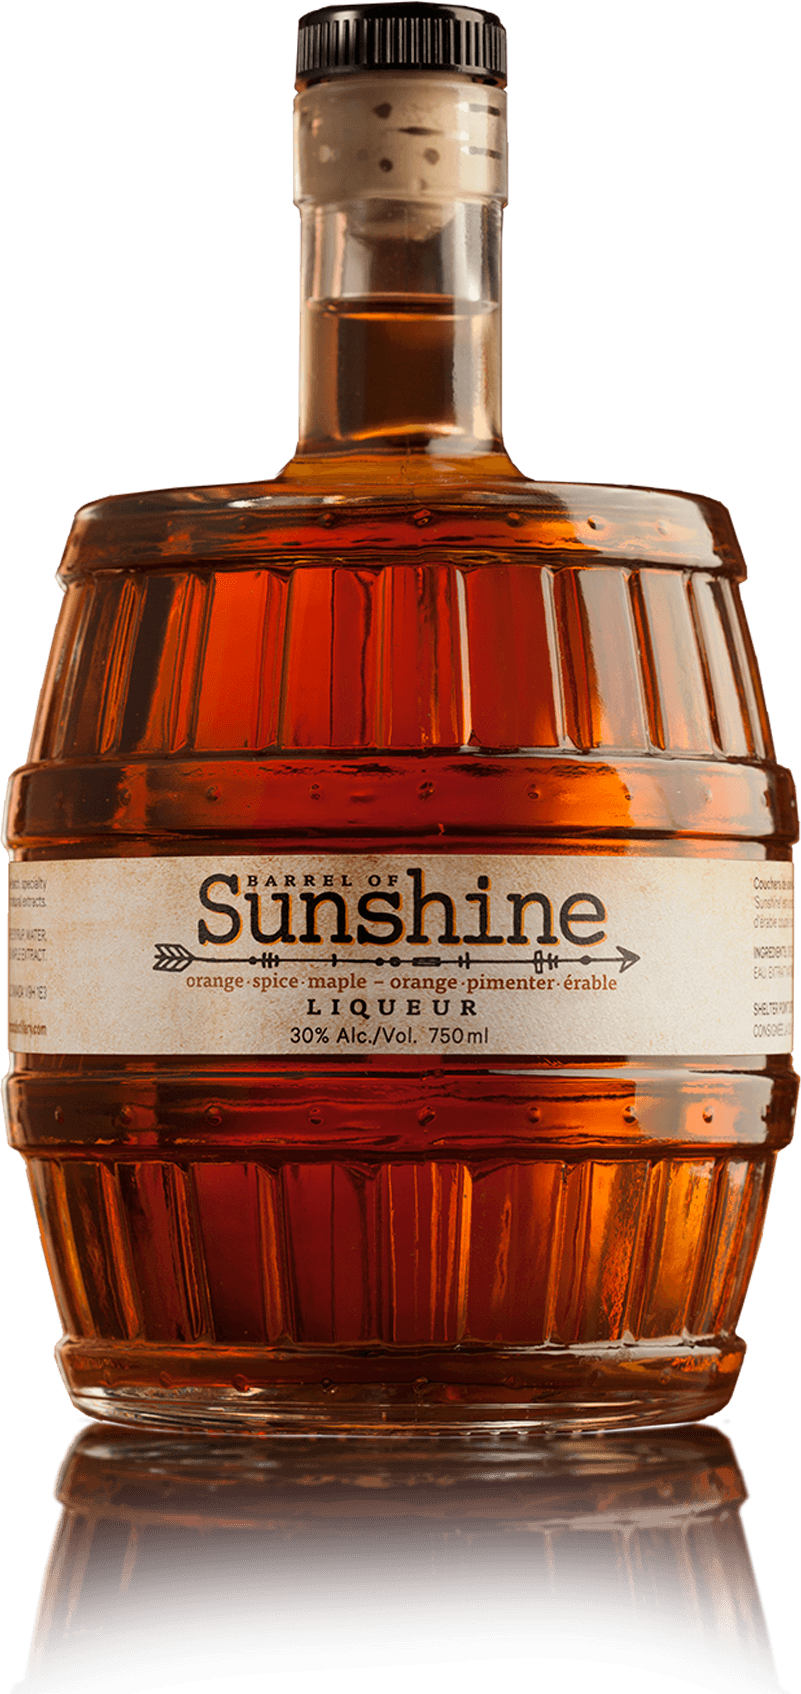 Shelter Point sunshine liqueur: an exceptional small-batch blend